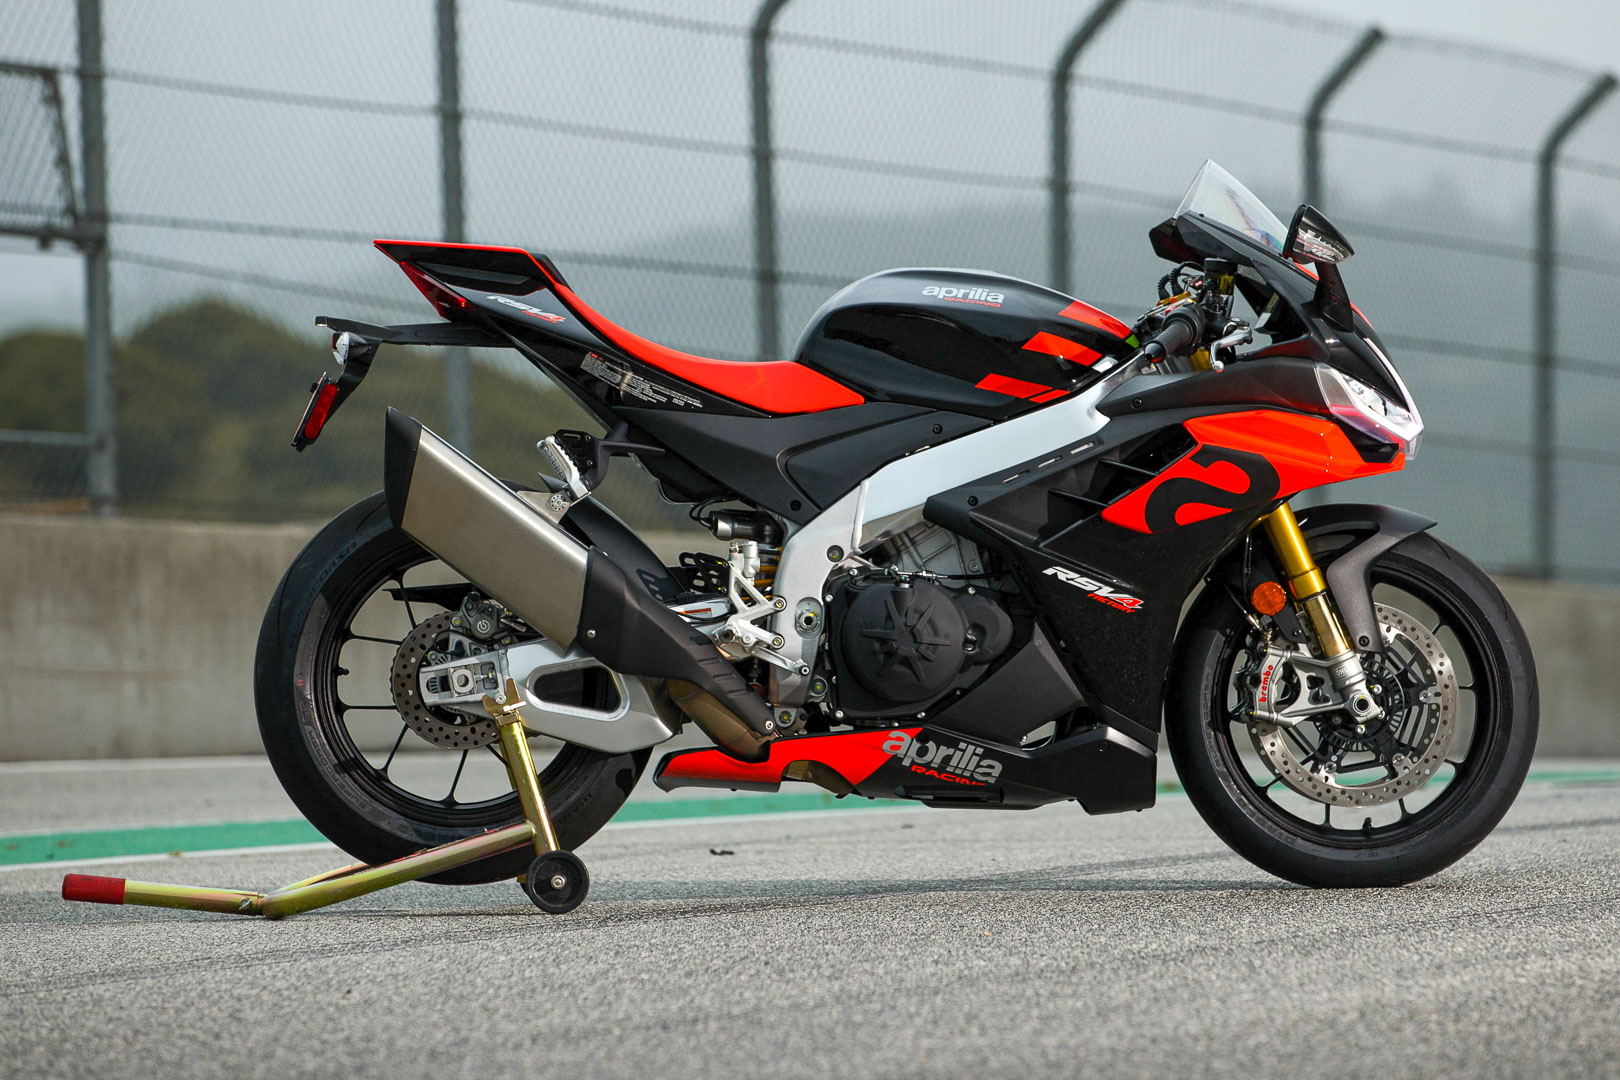 2021 Aprilia RSV4 Factory Review (20 Fast Facts From Laguna Seca)